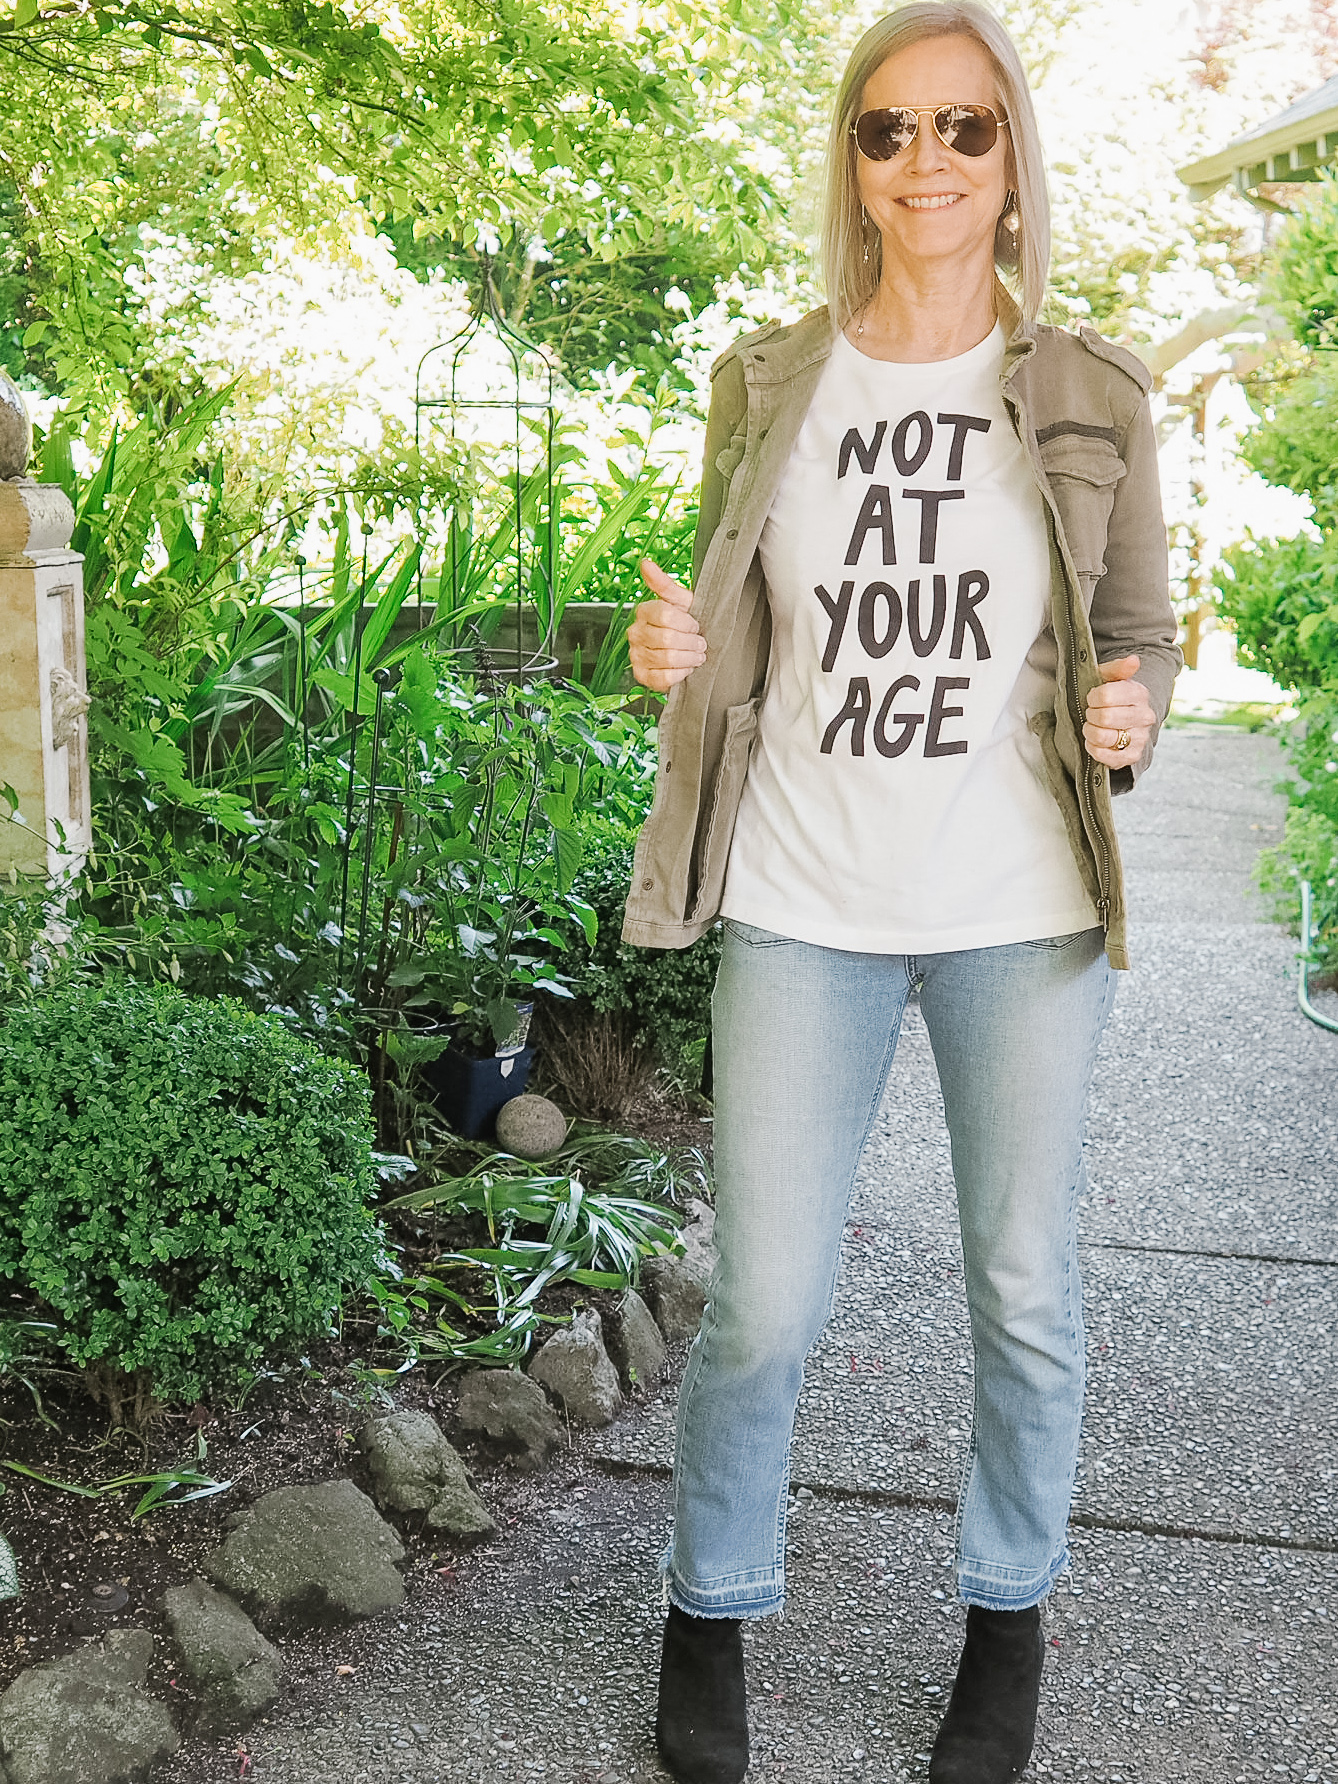 This awesome t-shirt is a collaboration between Fanny Karst and Advanced Style and I love it!